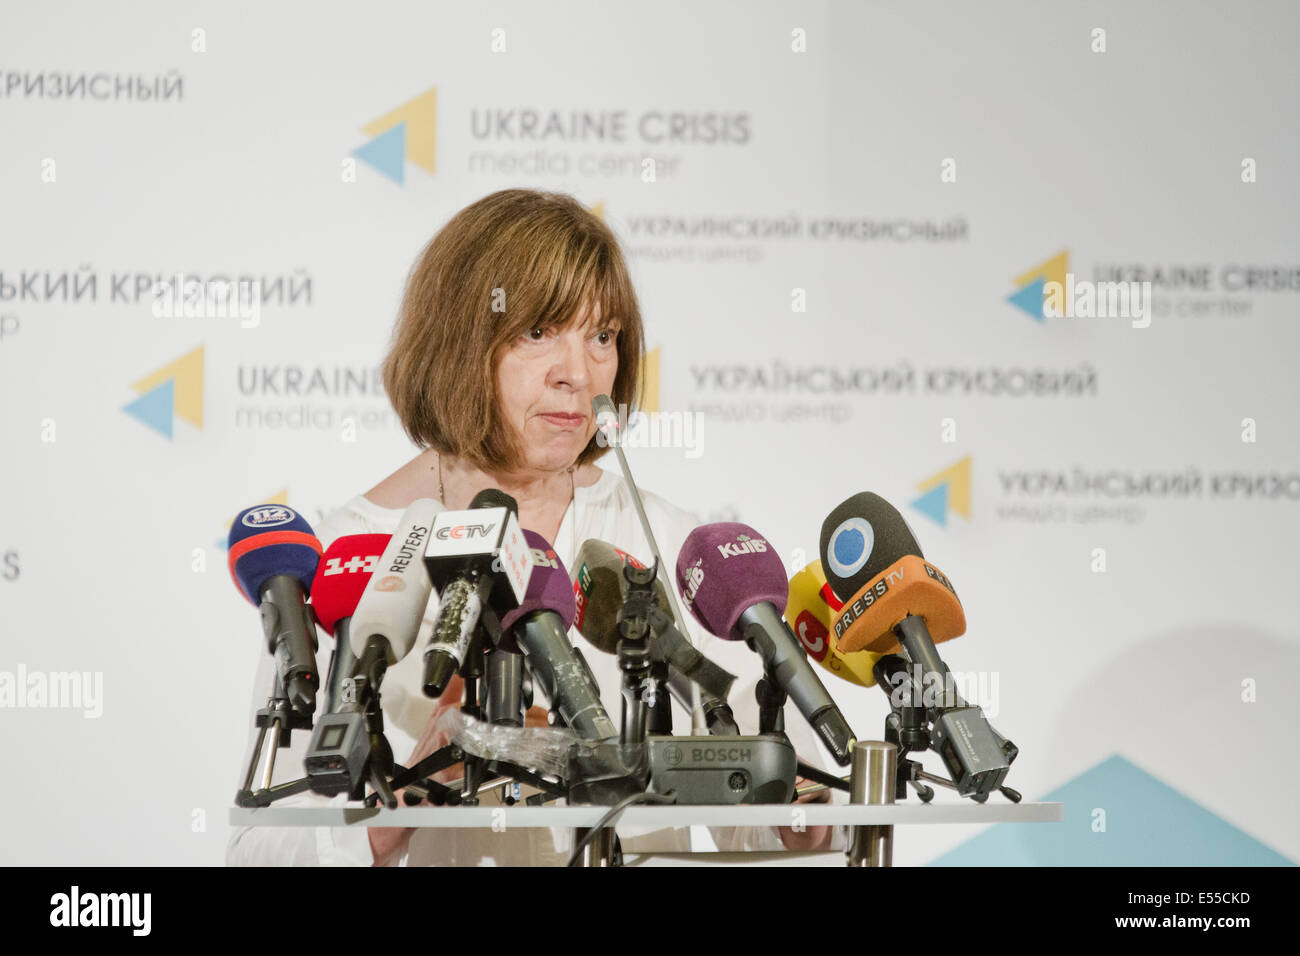 Kiev, Ukraine. 21st July, 2014. MEP Rebecca Harms from Greens group, Germany holds her press-conference in Kiev - Stock Image